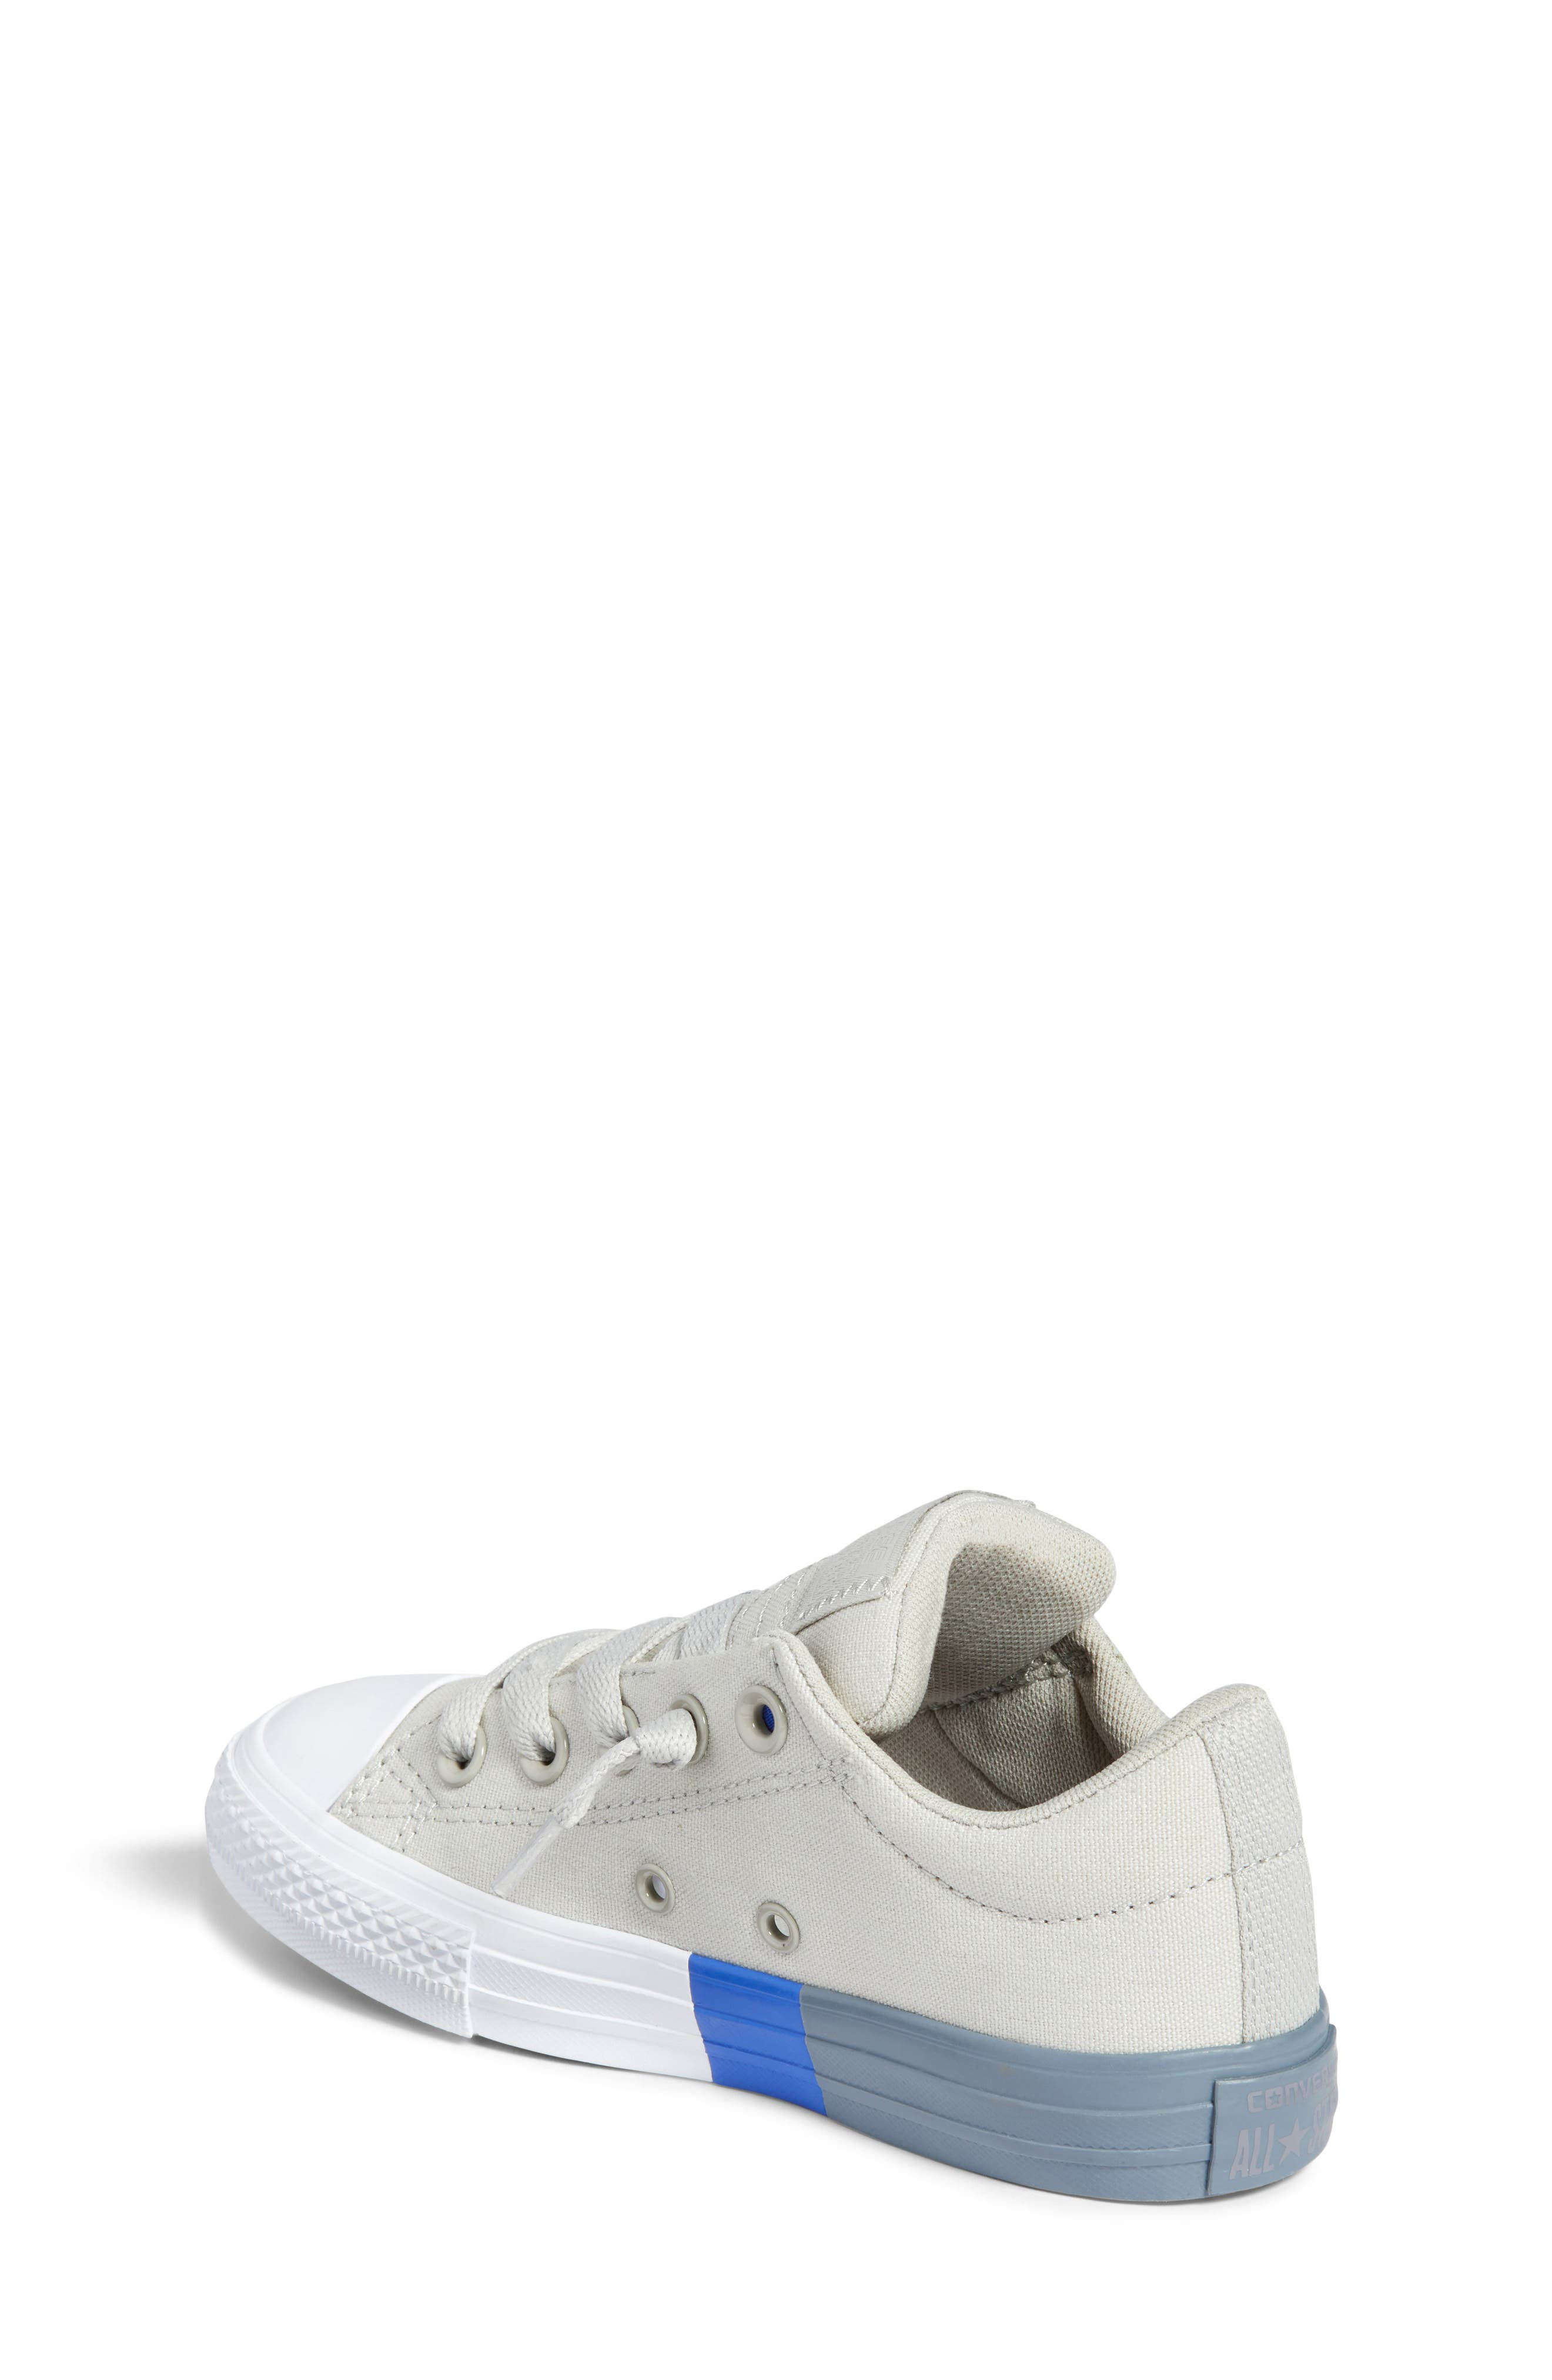 Chuck Taylor<sup>®</sup> All Star<sup>®</sup> Colorblock Street Sneaker,                             Alternate thumbnail 2, color,                             081